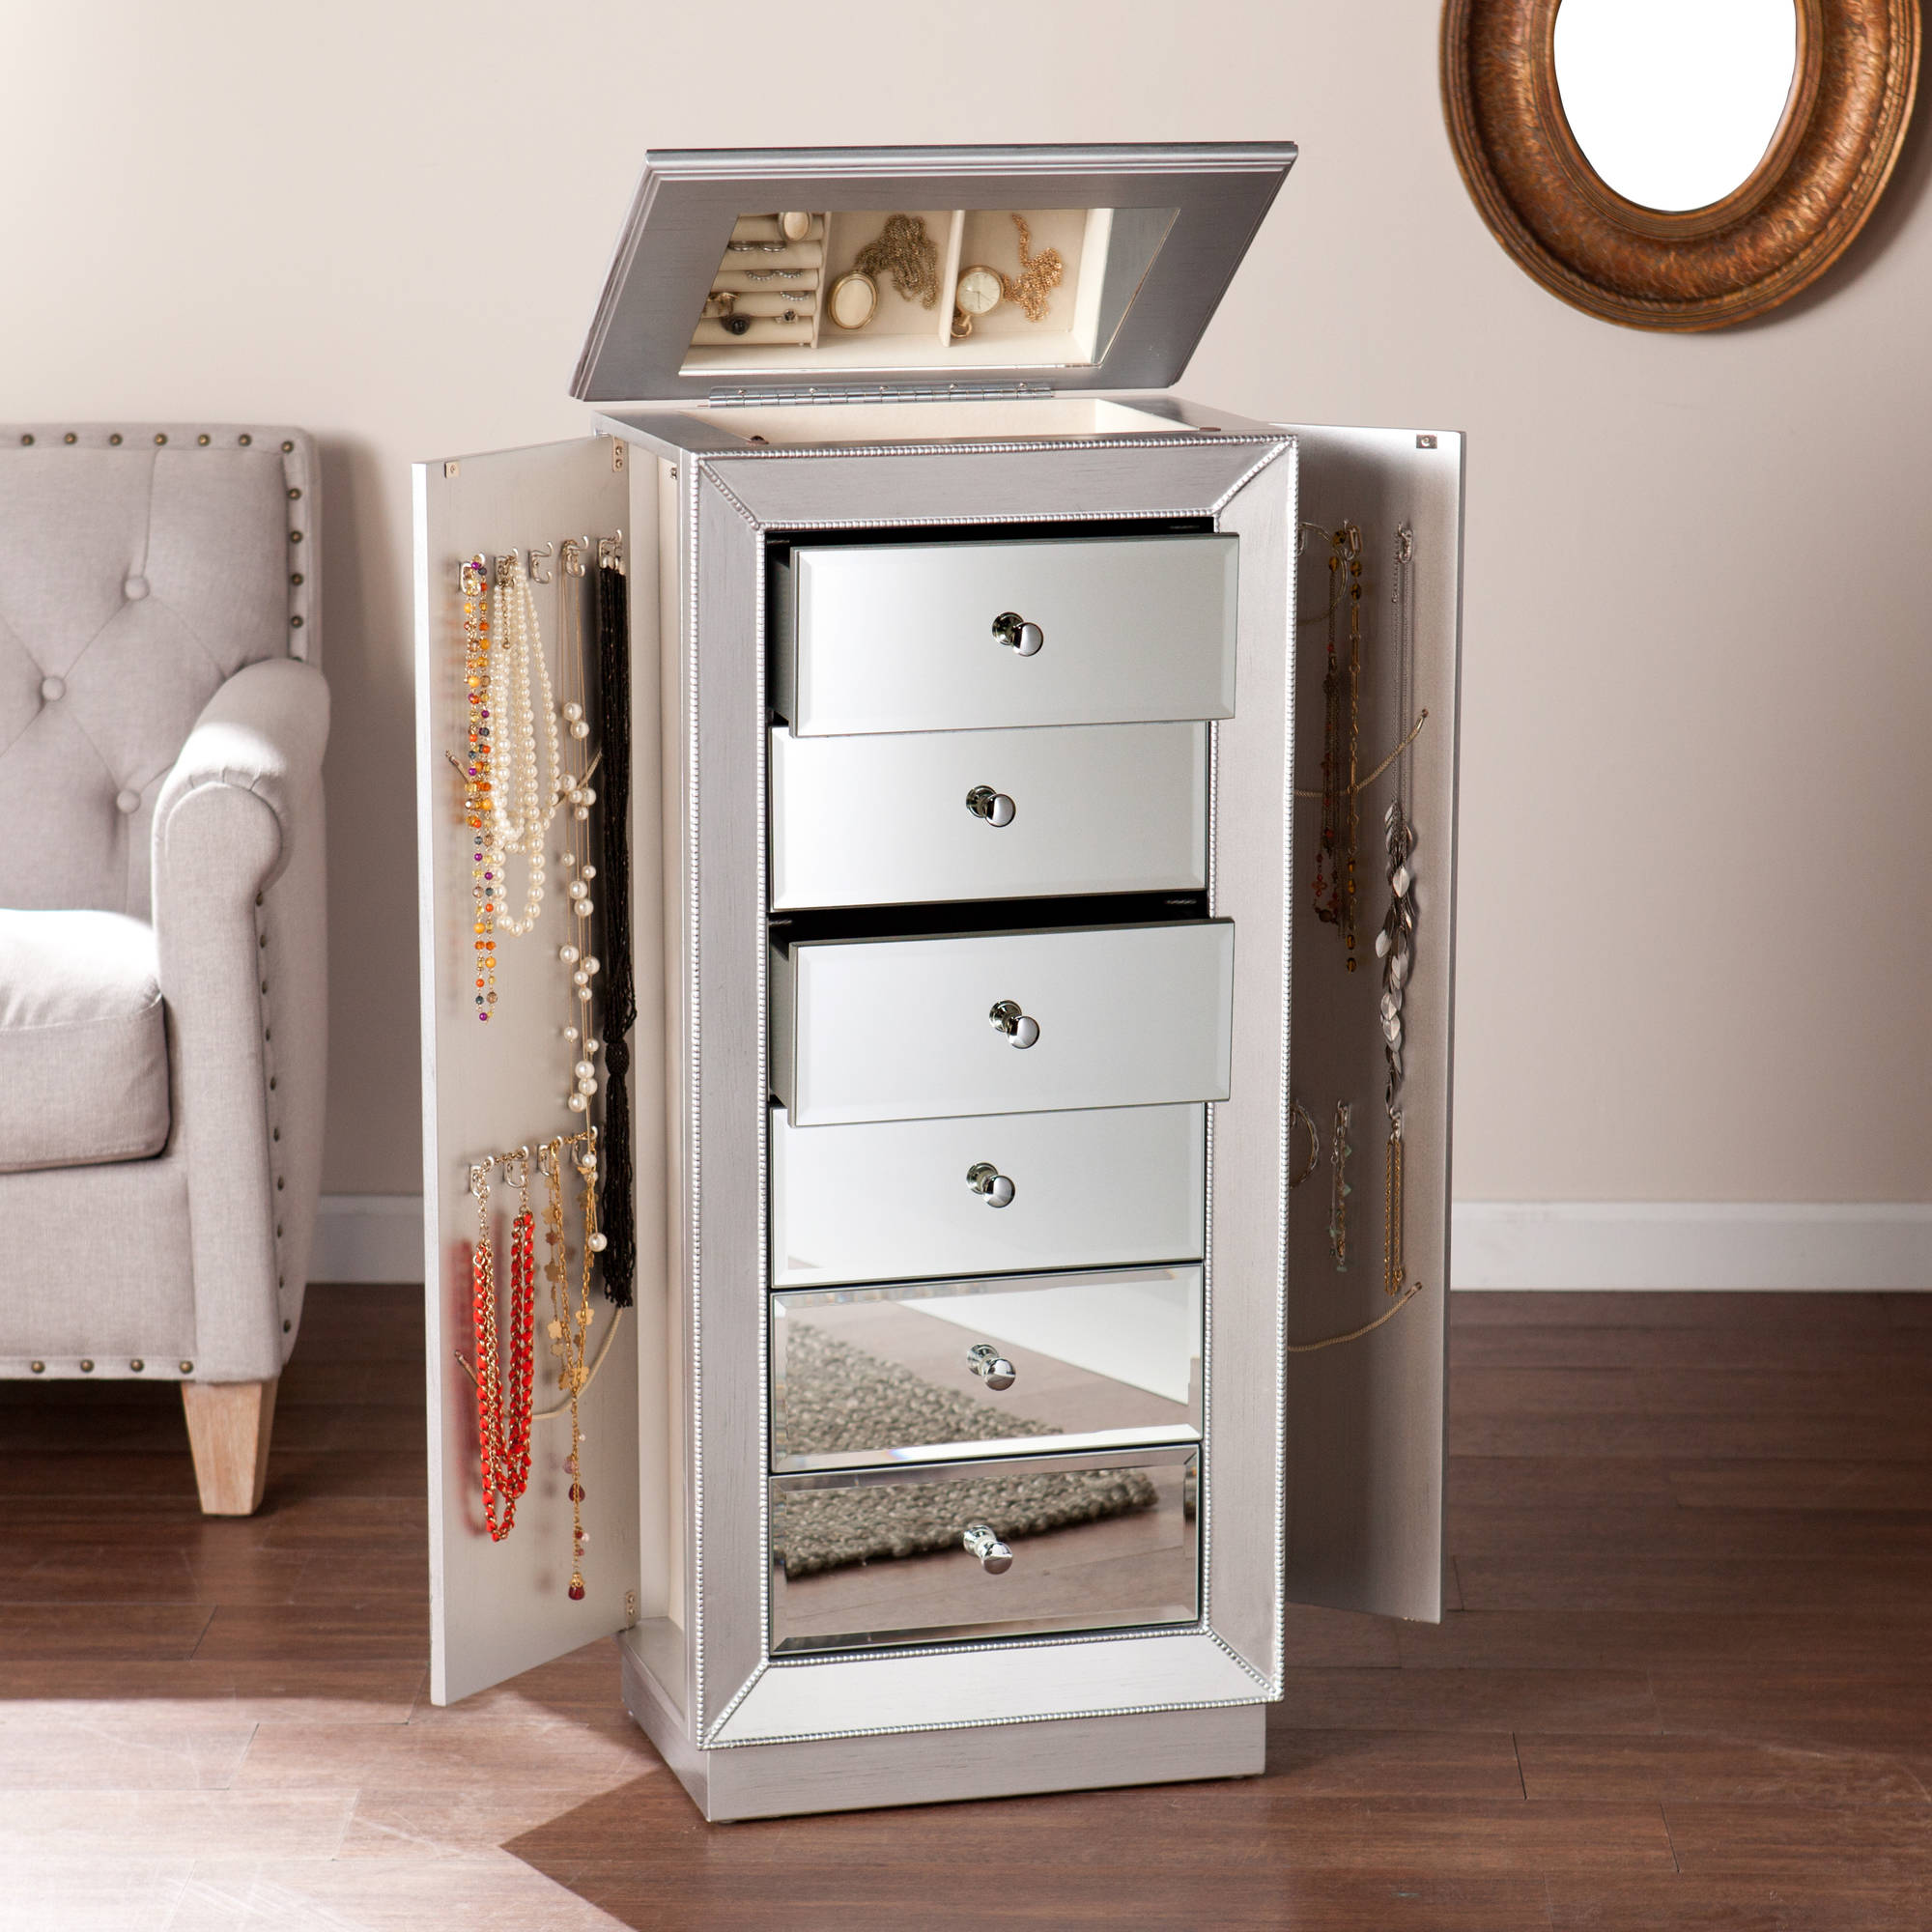 Southern Enterprises Javlin Mirrored and Matte Silver Jewelry Armoire